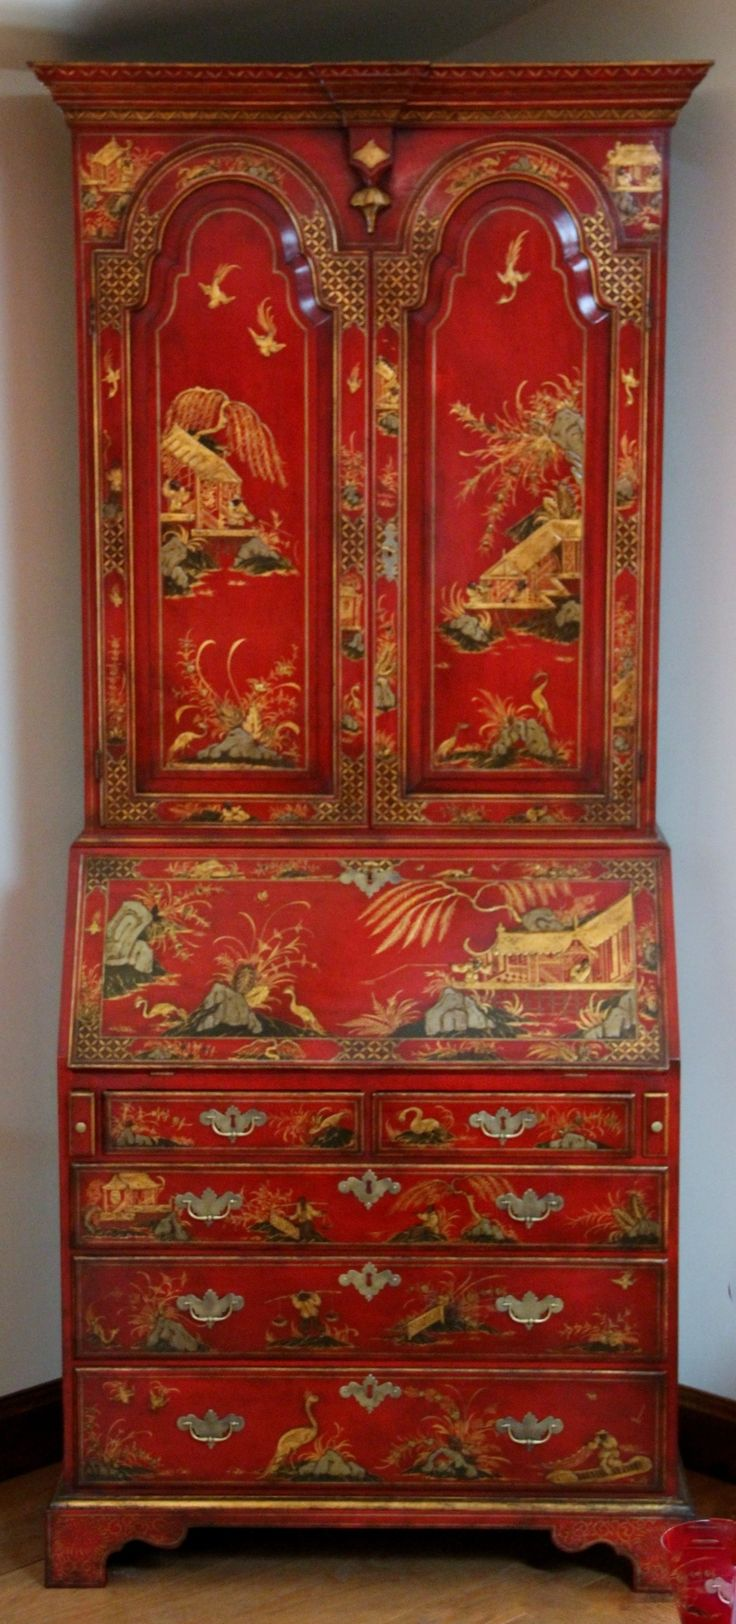 Early 18th Century Chinoiserie lacquer piece.